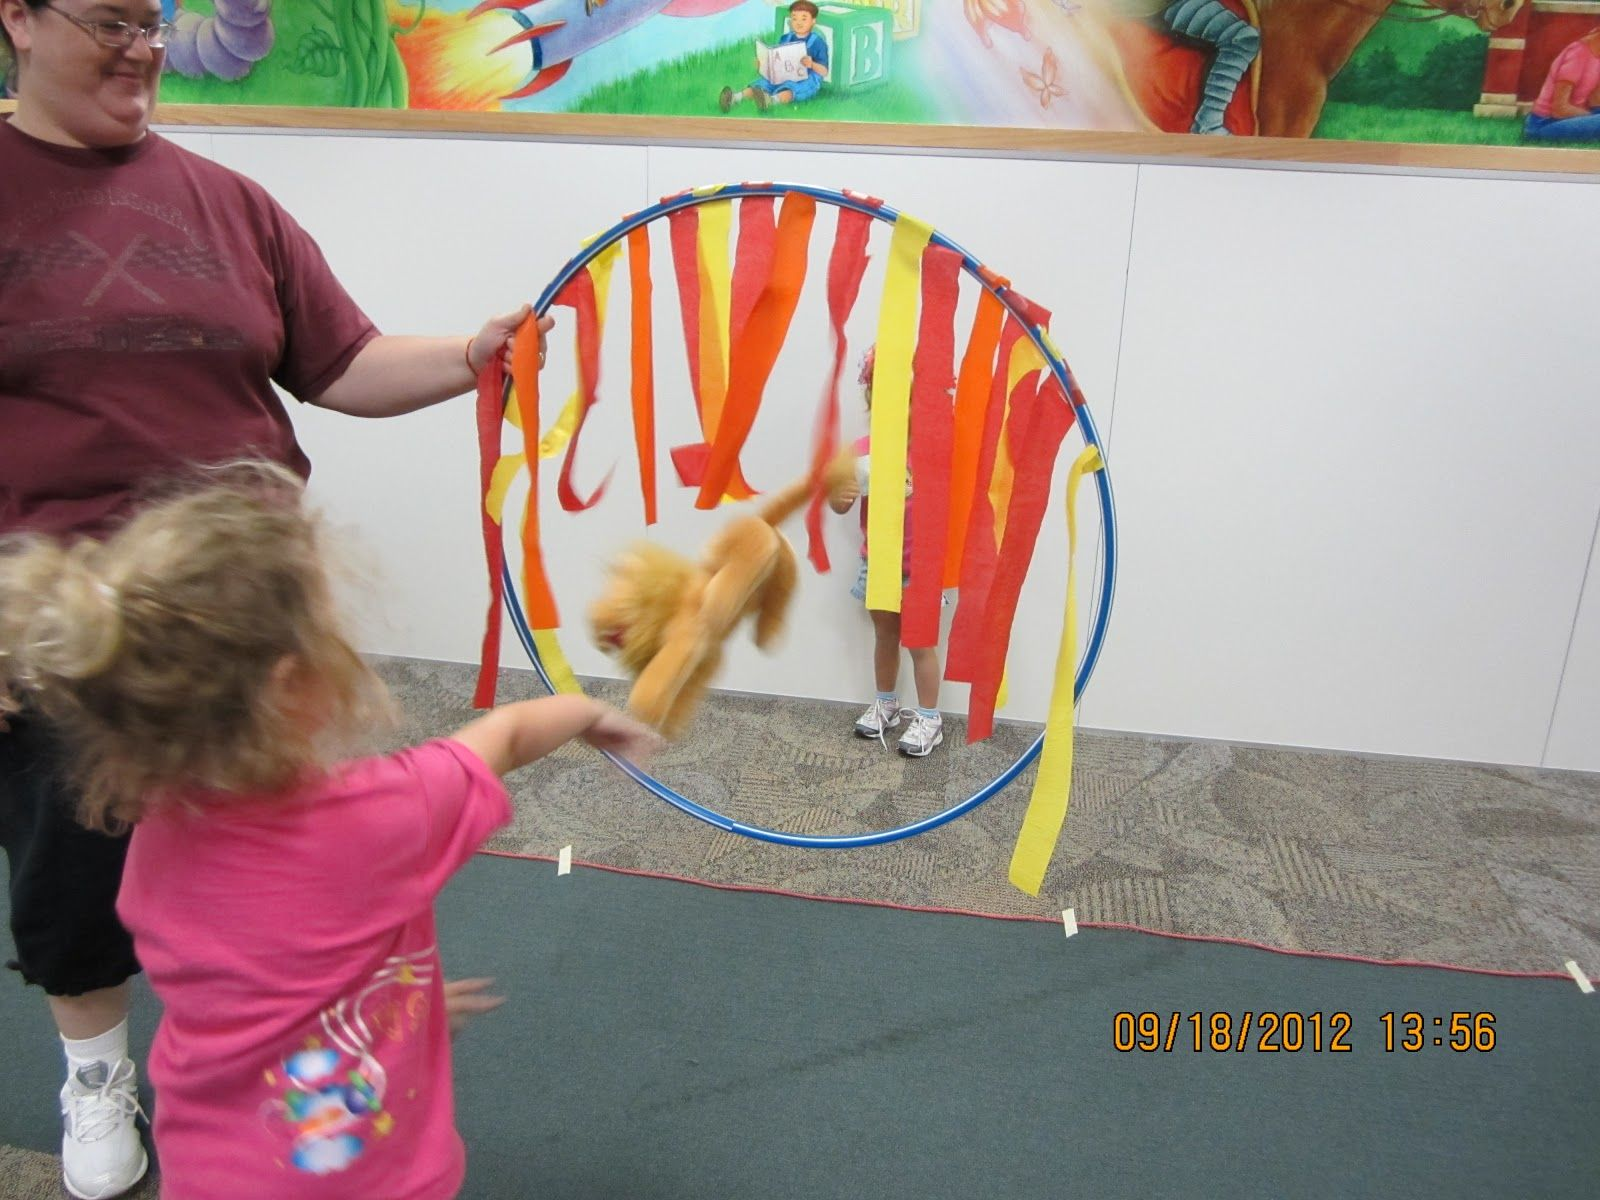 This Would Be A Fun And Easy Game For The Kids To Play During Story Time Preschool Circus Circus Activities Circus Theme Preschool